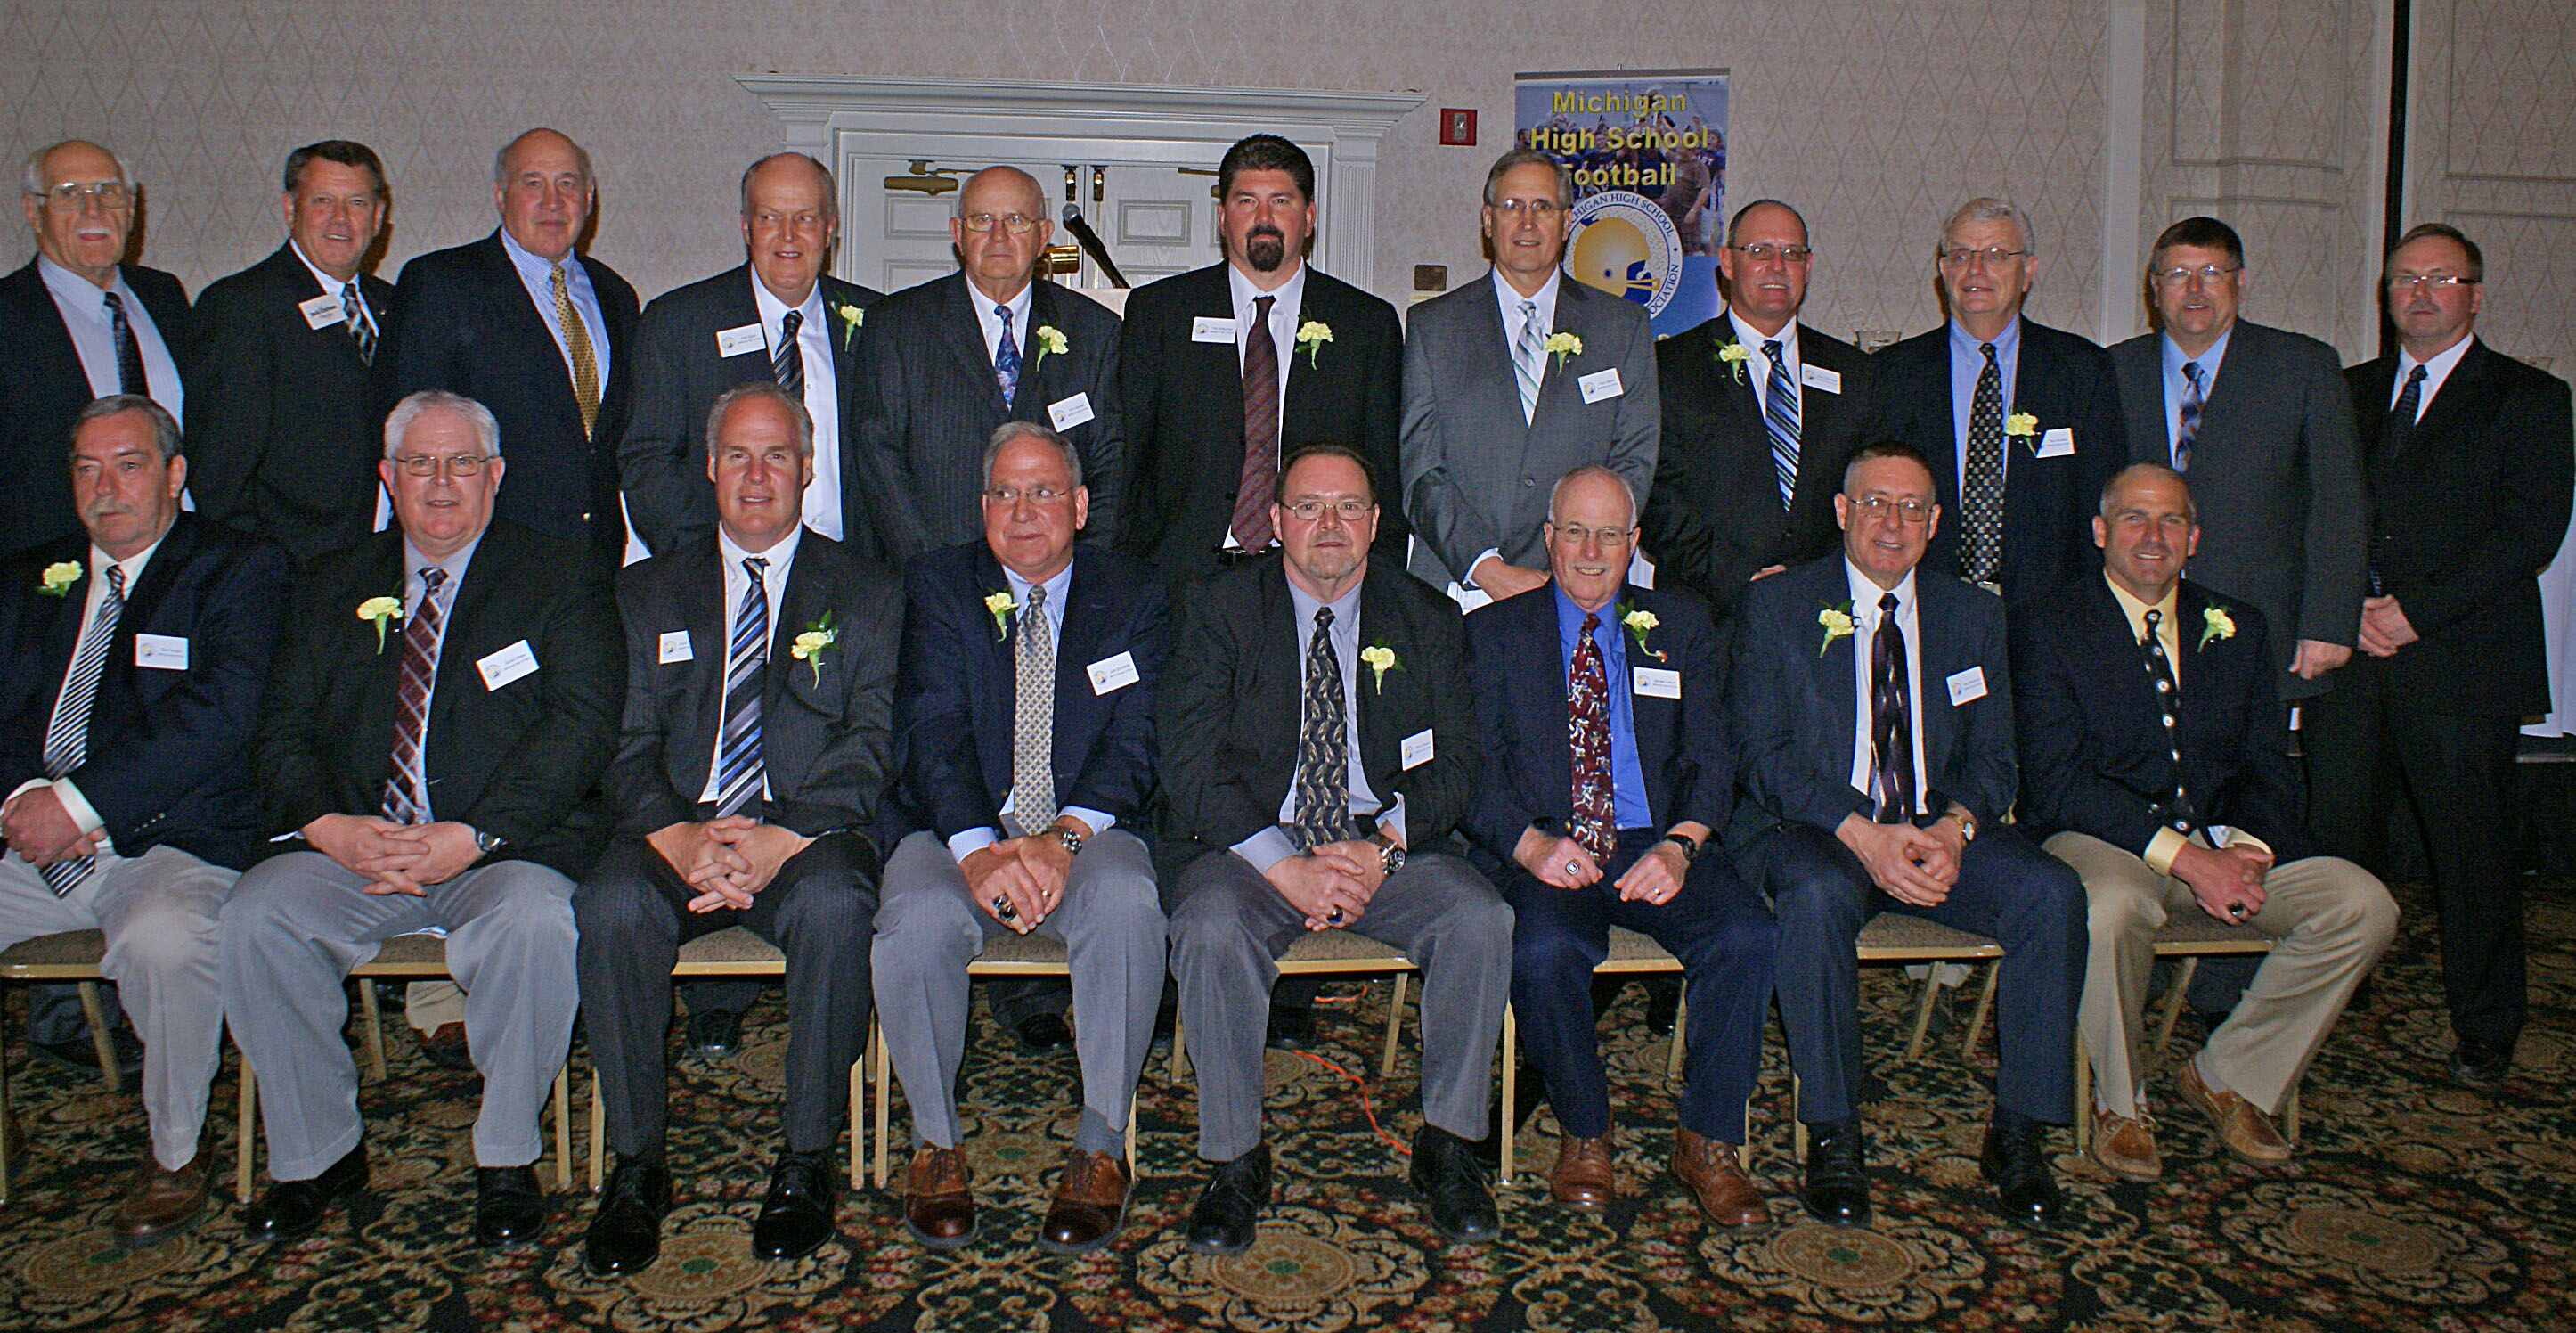 HoF Group 2012